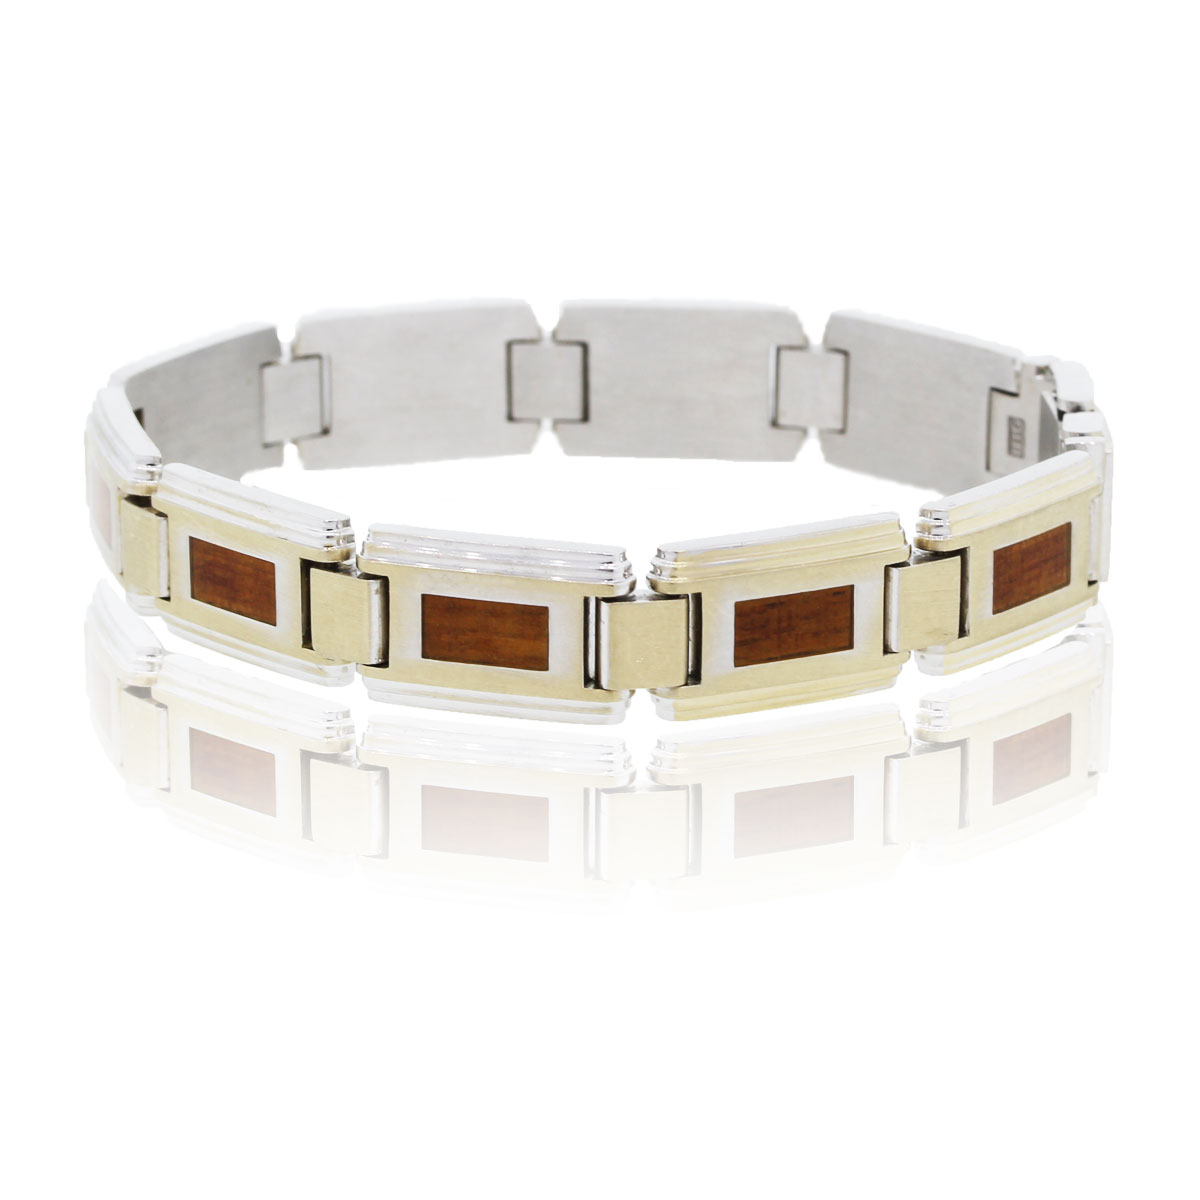 You are viewing this IBGoodman18k White Gold with Wood Inlay Mens Bracelet!